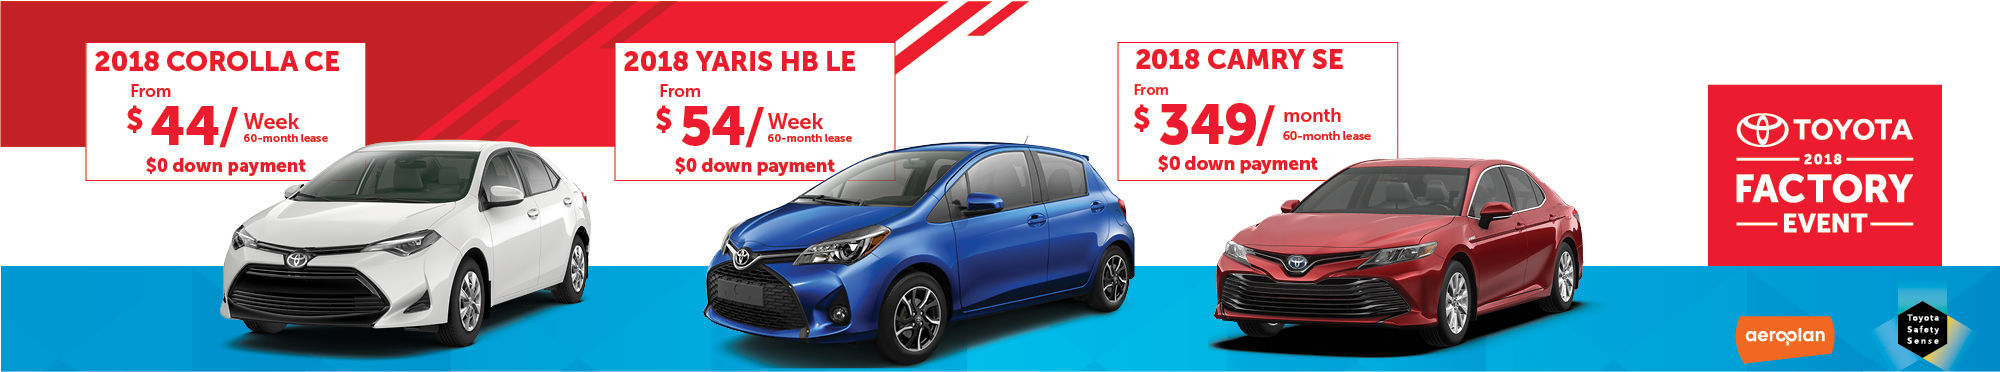 3 cars promotion 2018